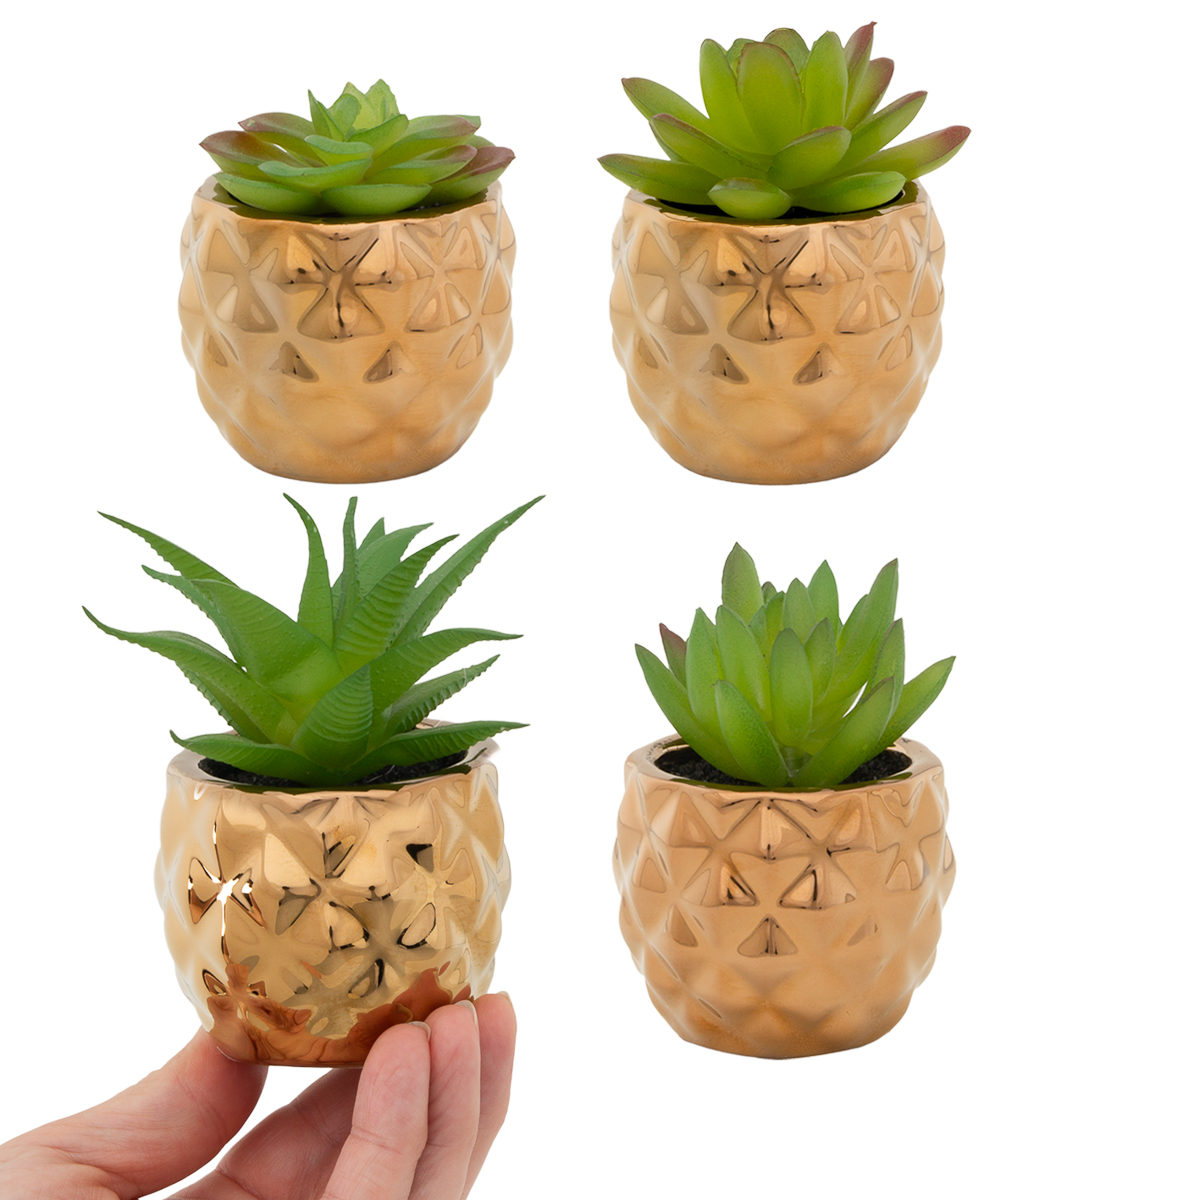 Home Trends (4 Pack) Fake Succulent Plants In Gold Pot Artificial Plants Home Decor Office Decor